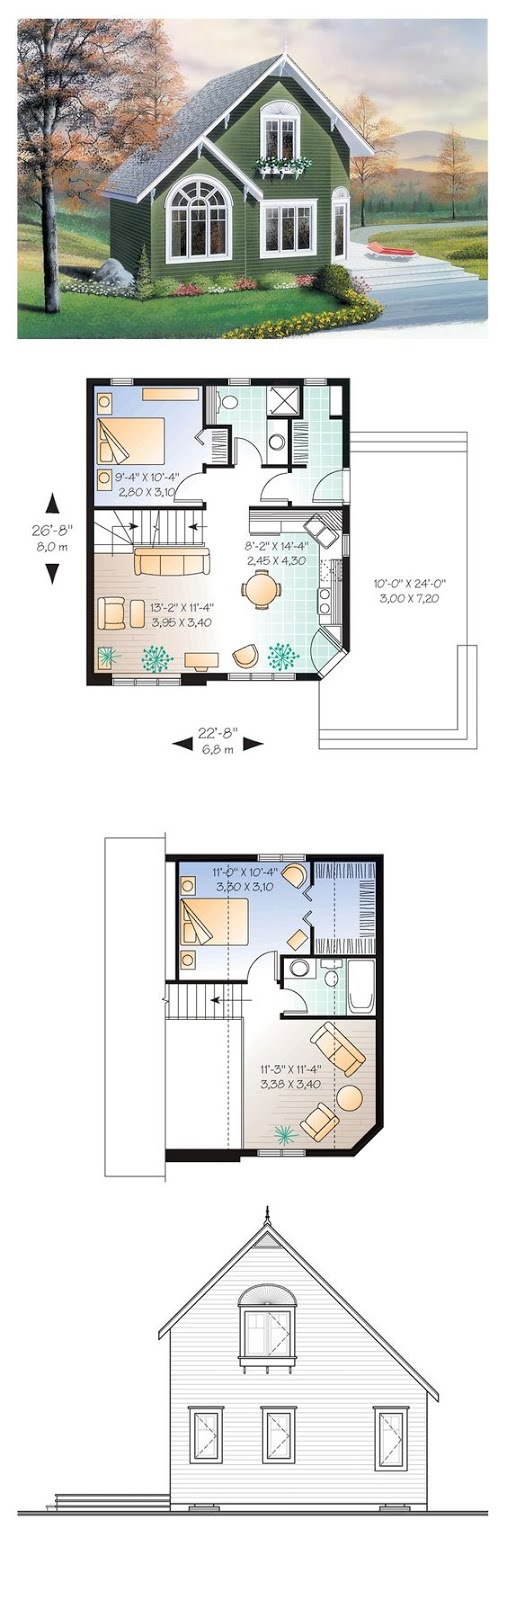 Best Floor plan is basically depends on the size of the house us lot